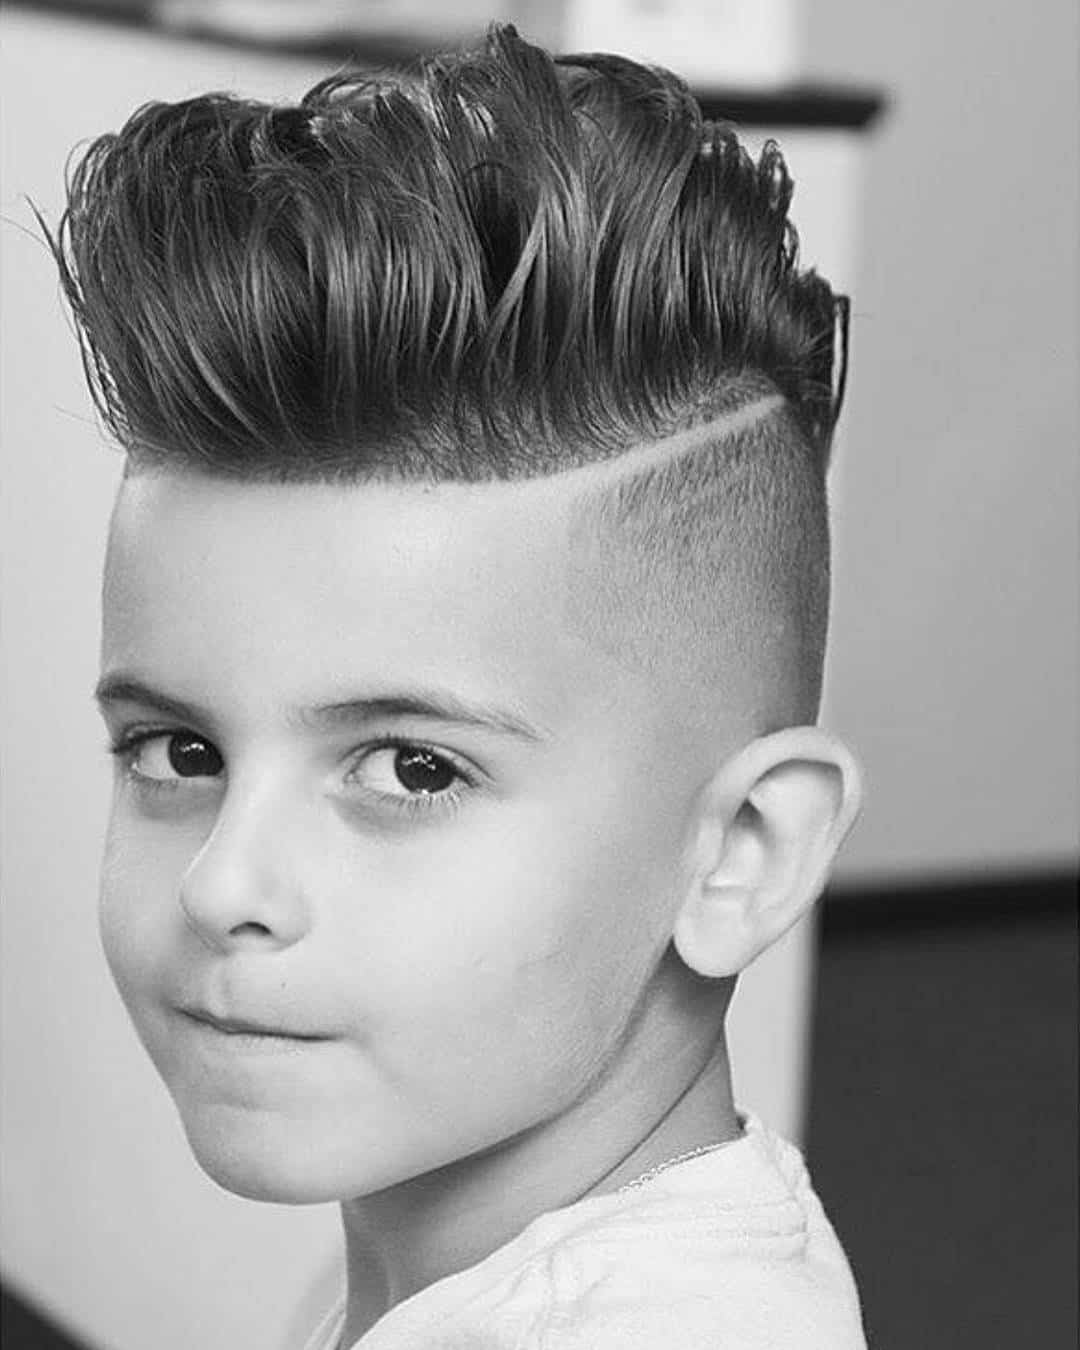 Hairstyles For A Boy 50 Best Boys Long Hairstyles For Your Kid 2019